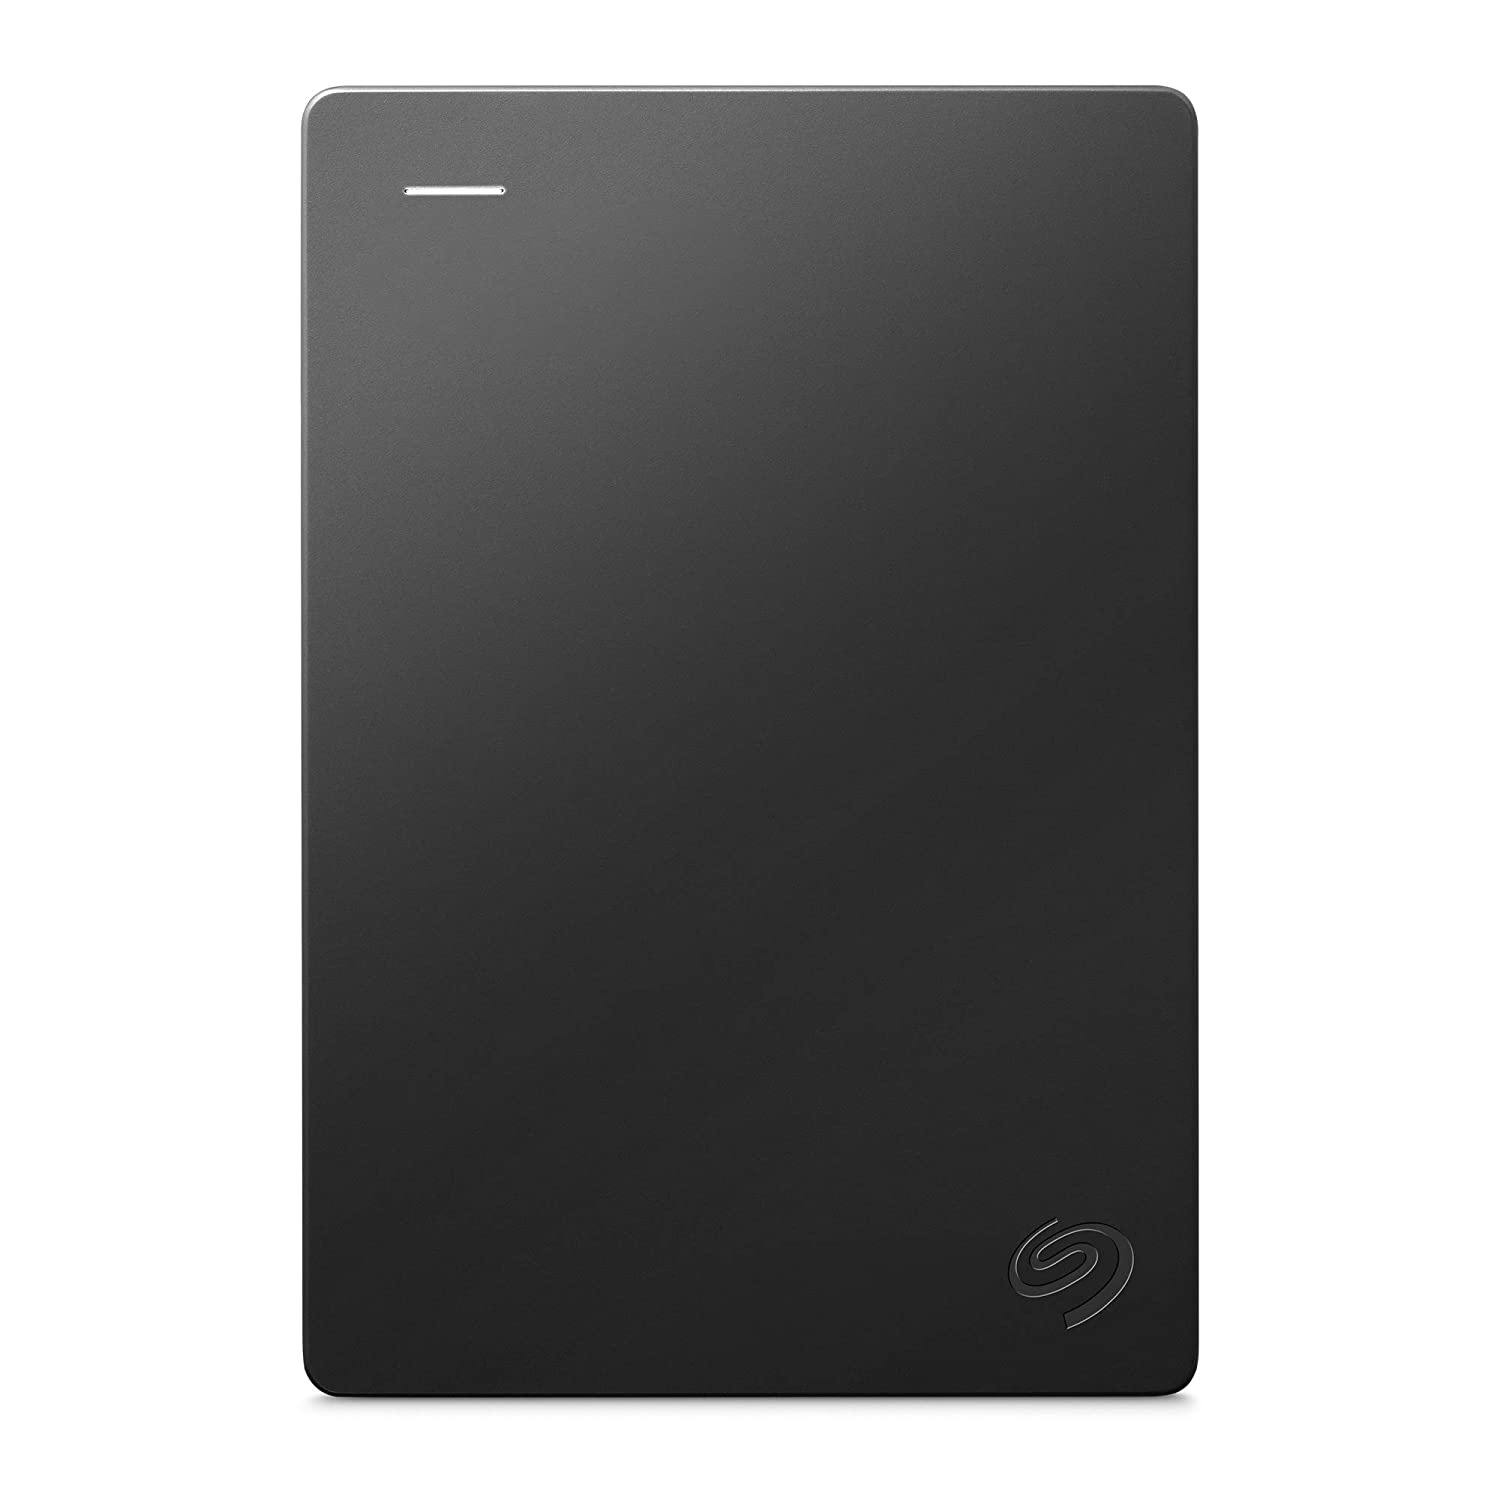 Seagate Expansion 2 TB External HDD